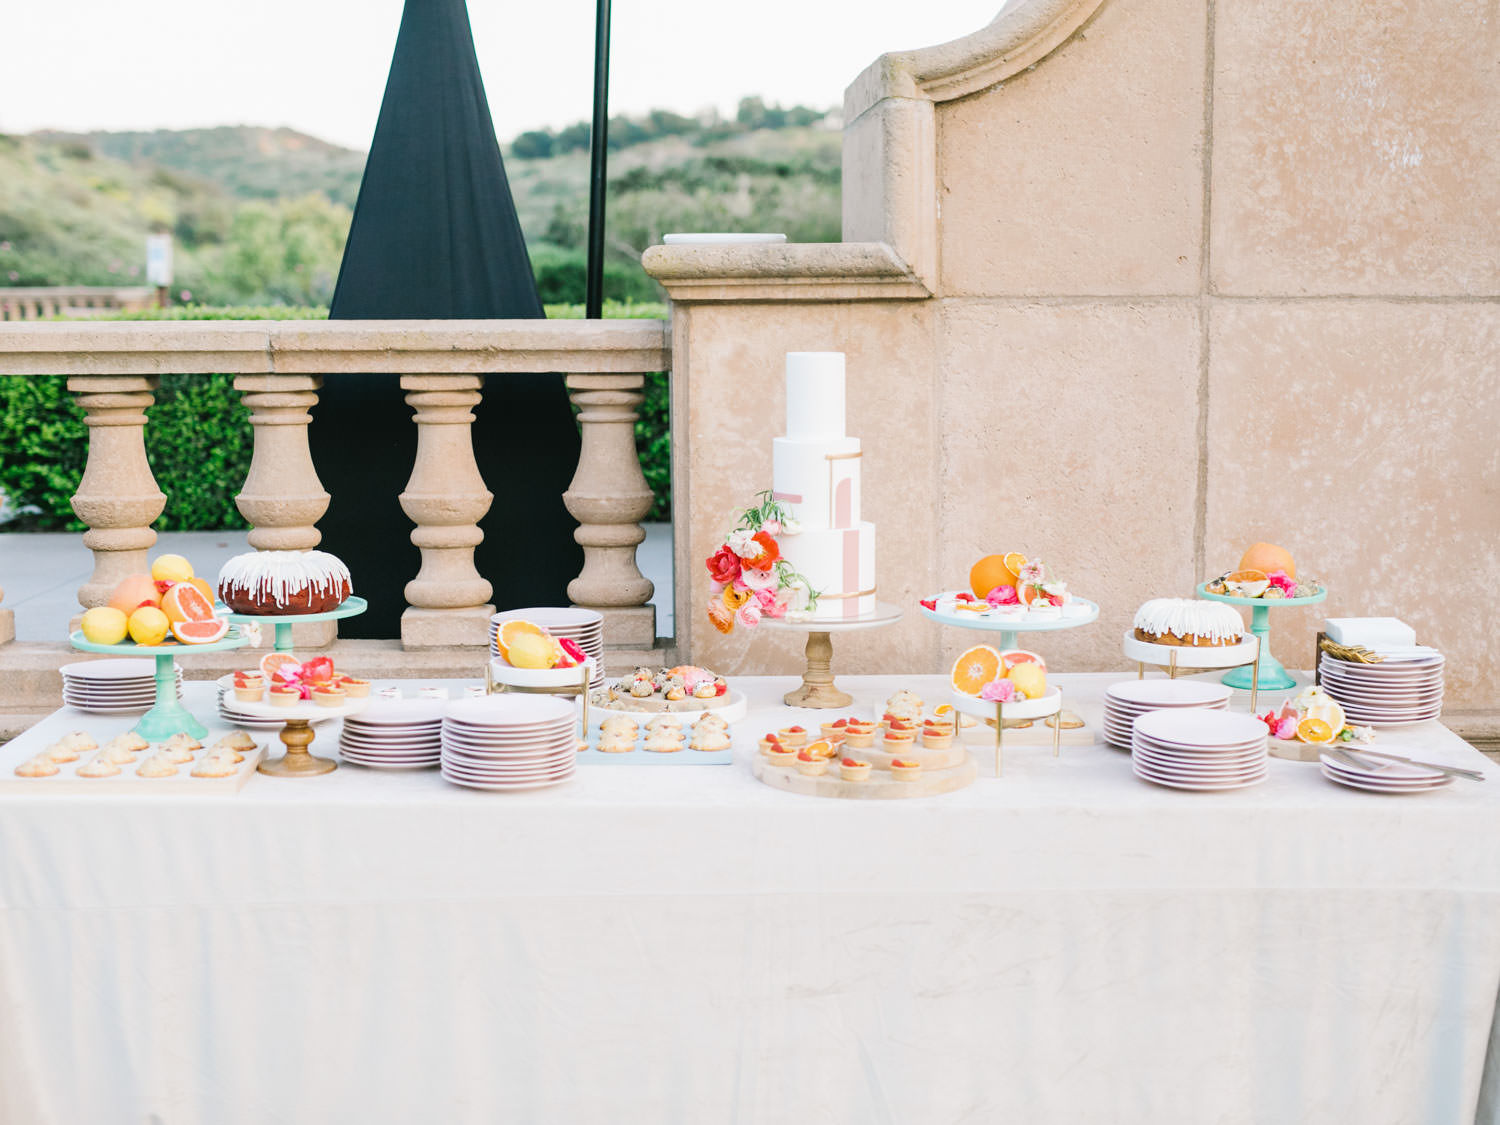 Dessert display with bone velvet linen. Blush plates for serving. Three tier white cake with pink lines for a geometric cake. Cut fruit and flowers styled with desserts.